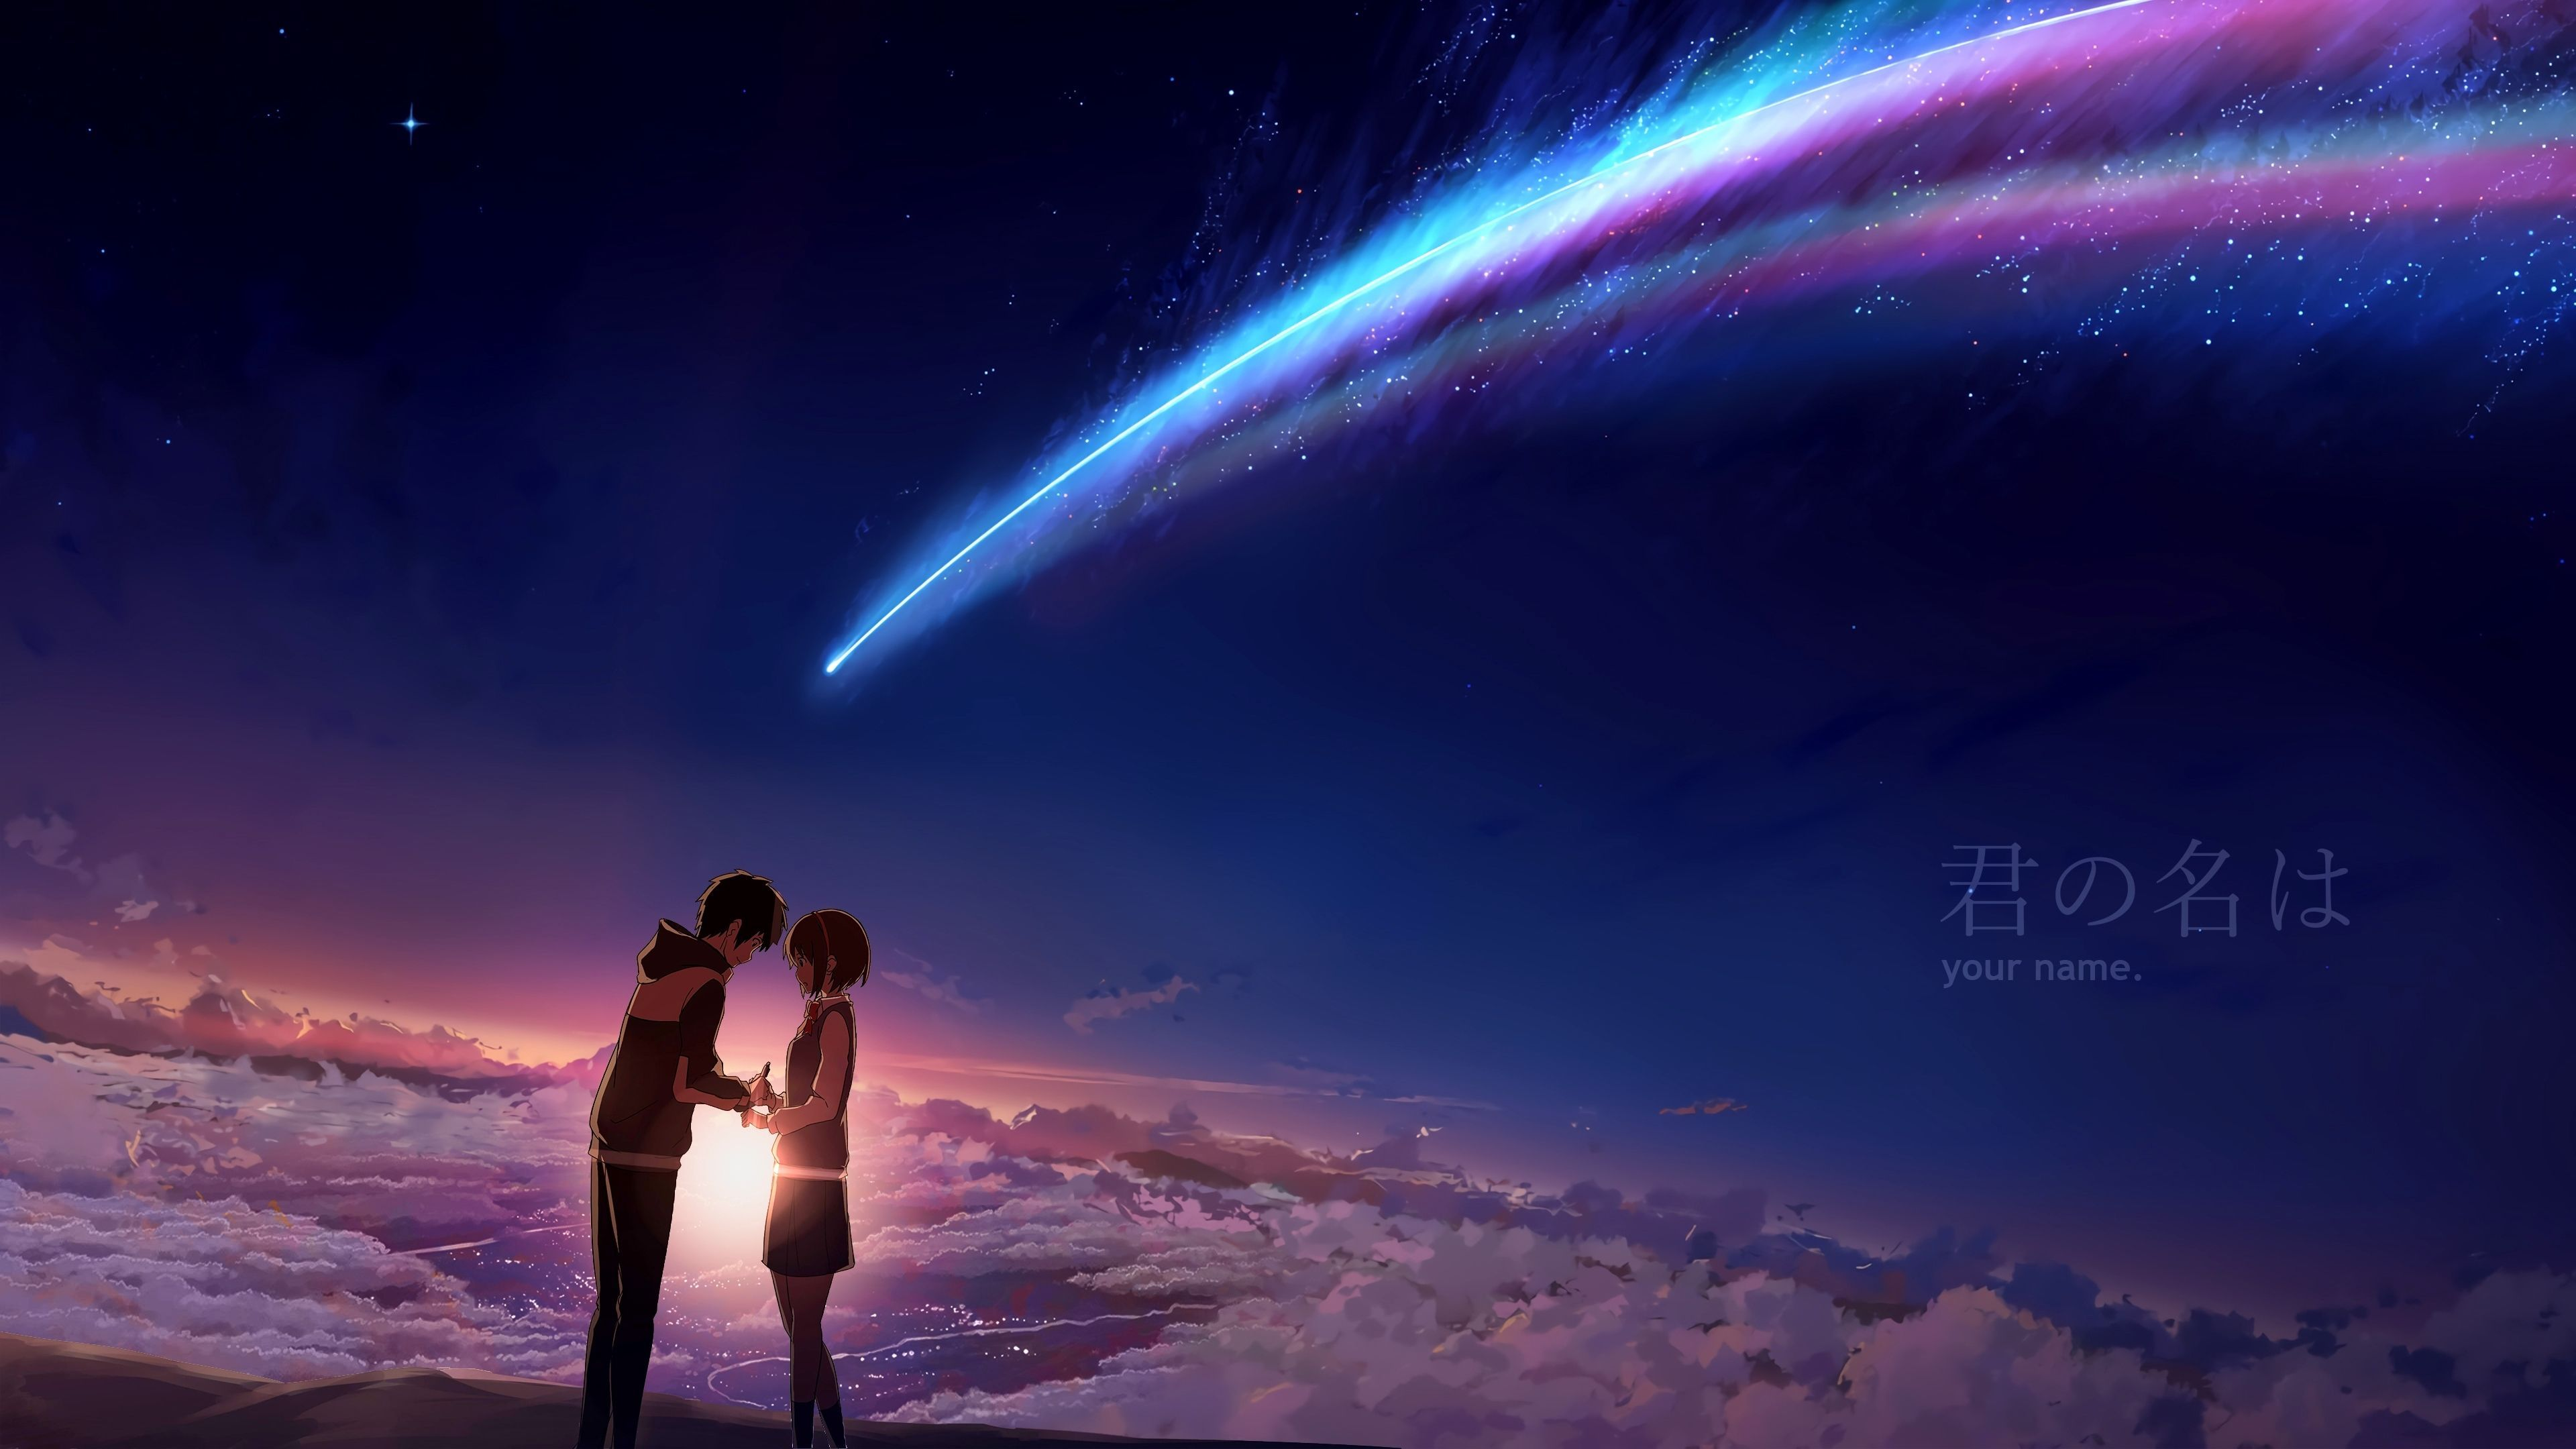 4k Wallpaper For Pc Universe Gallery Kimi No Na Wa Wallpaper Pc 4k Wallpapers For Pc